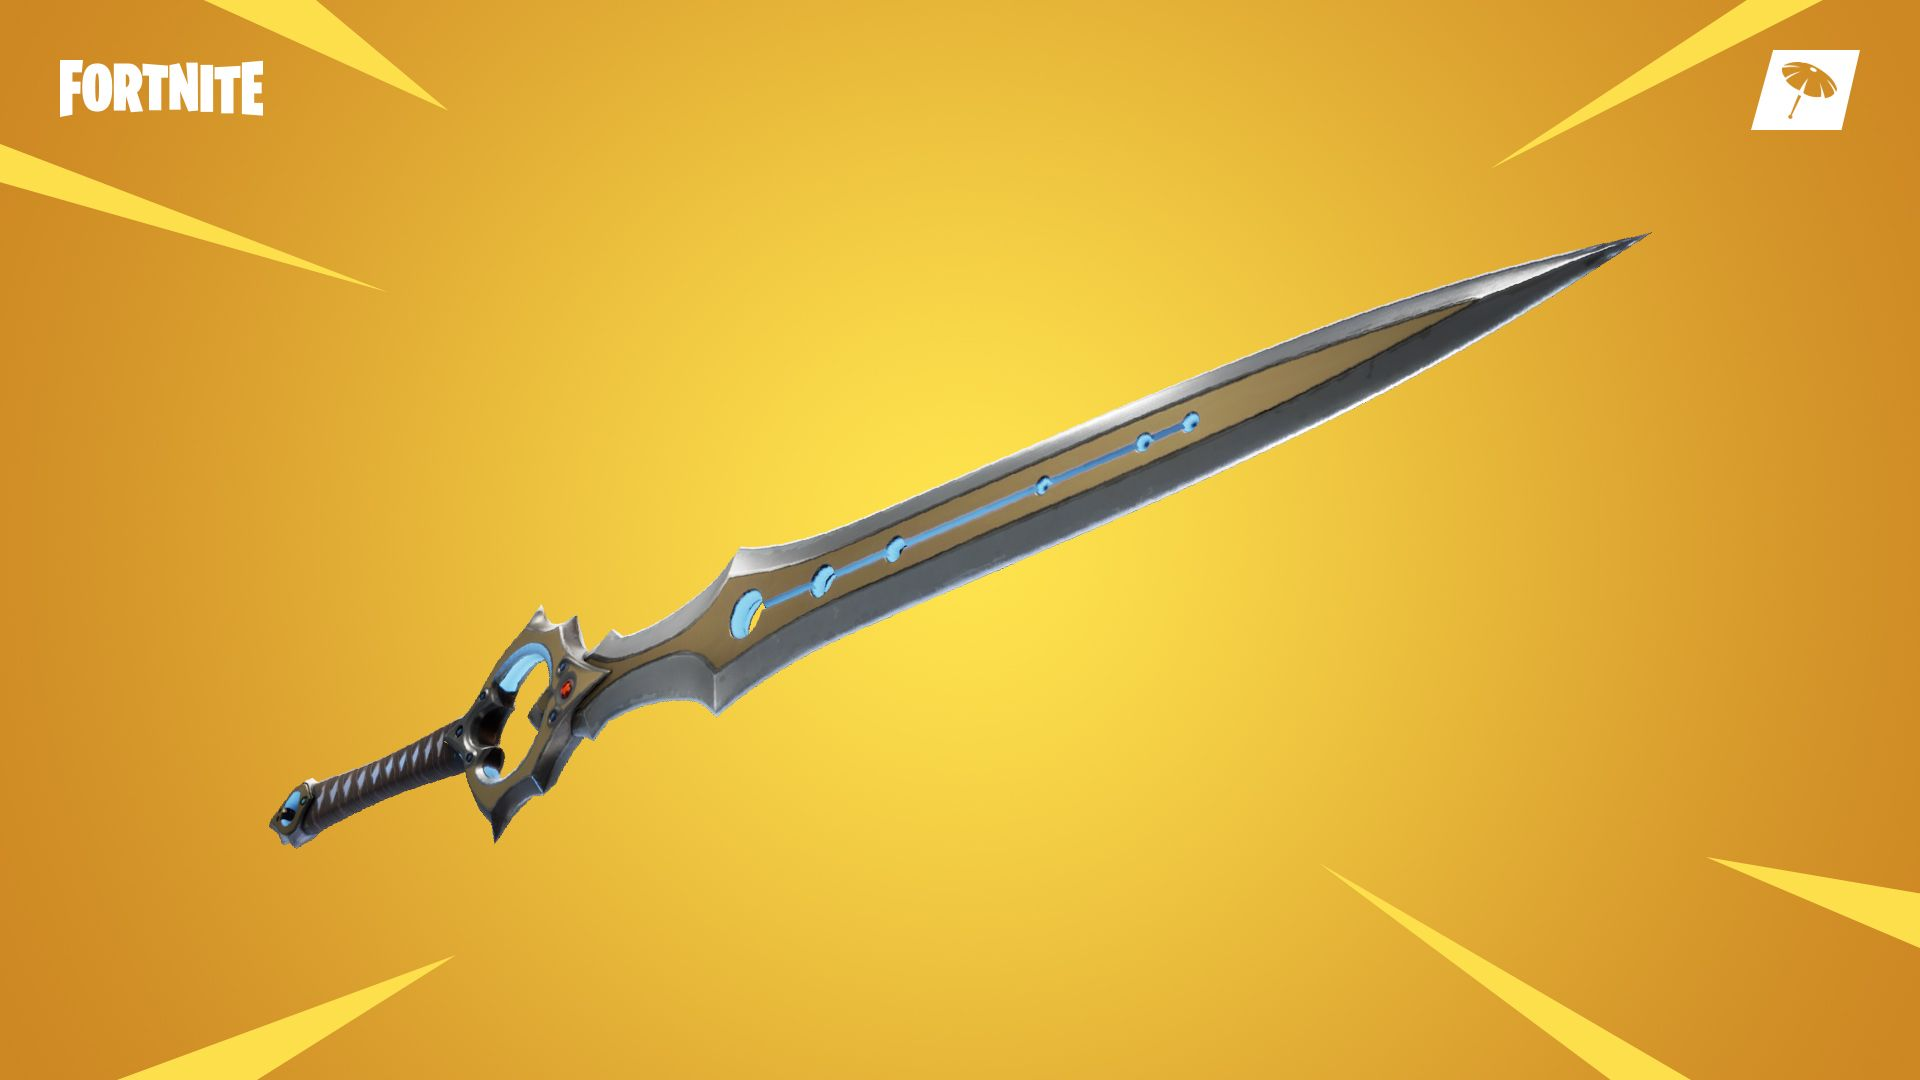 Fortnite Infinity Blade vaulted